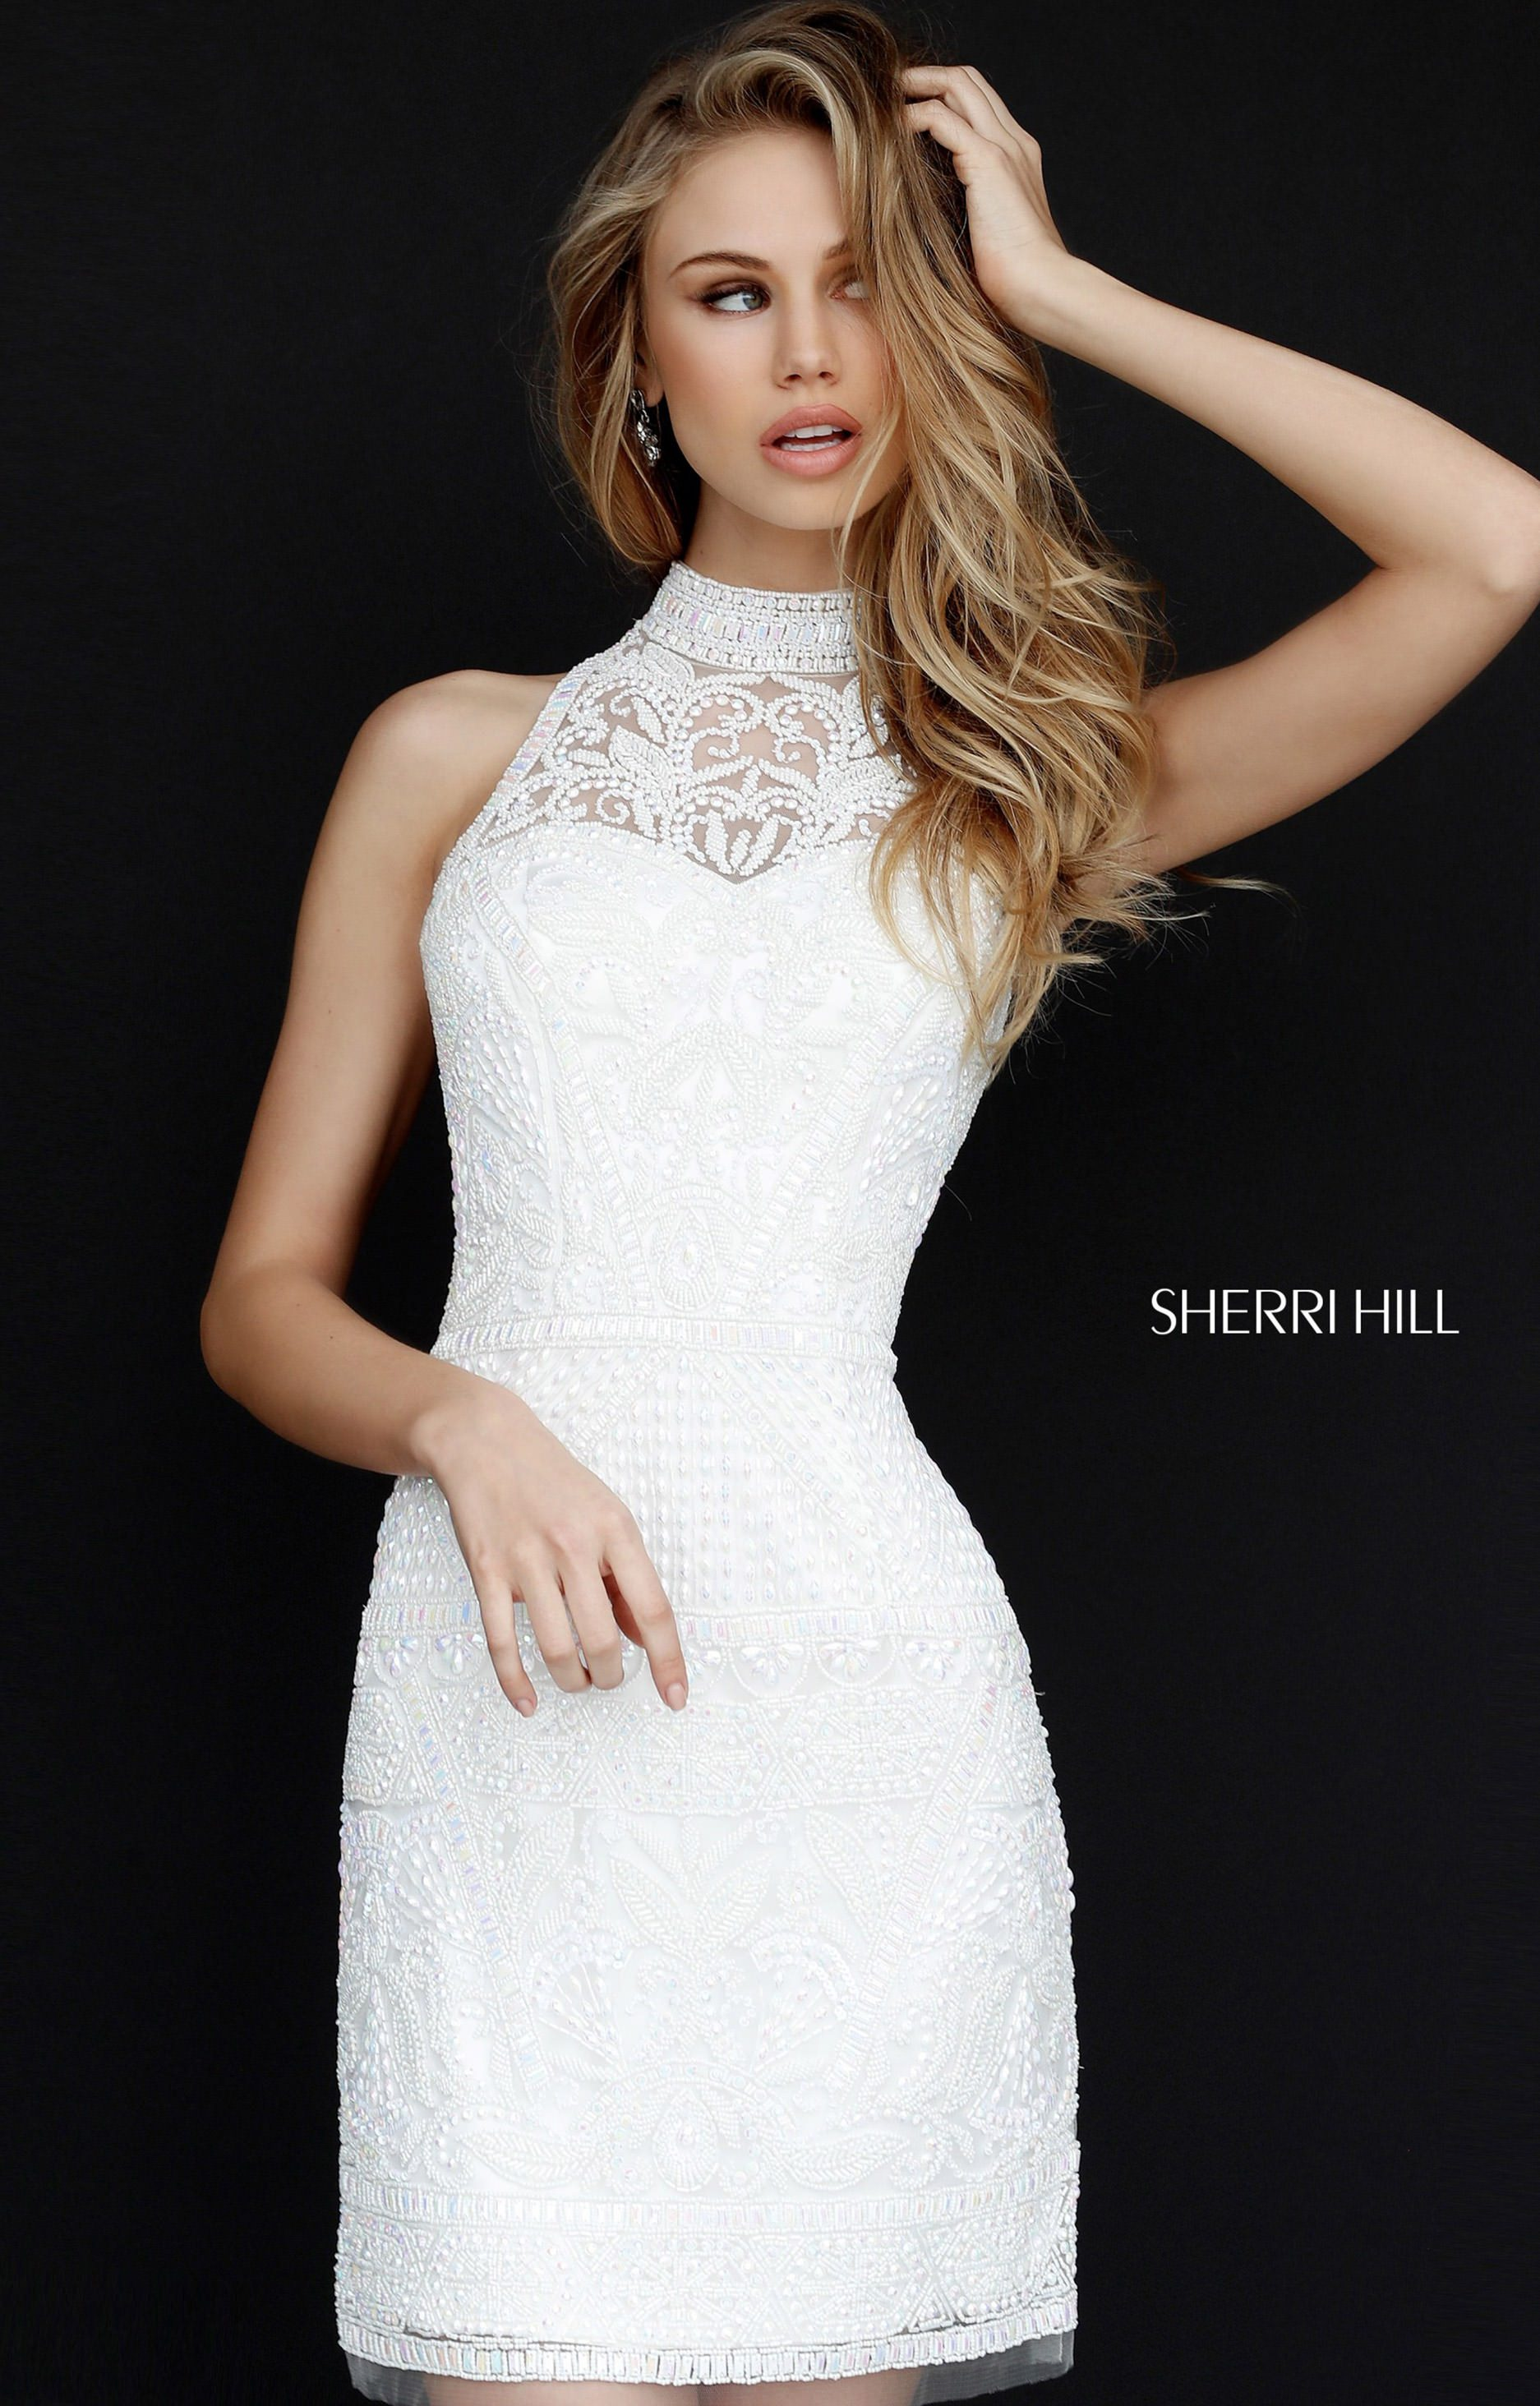 60512d40b4 Sherri Hill 51284 - Fancy Short Dress with Beads and Open Back